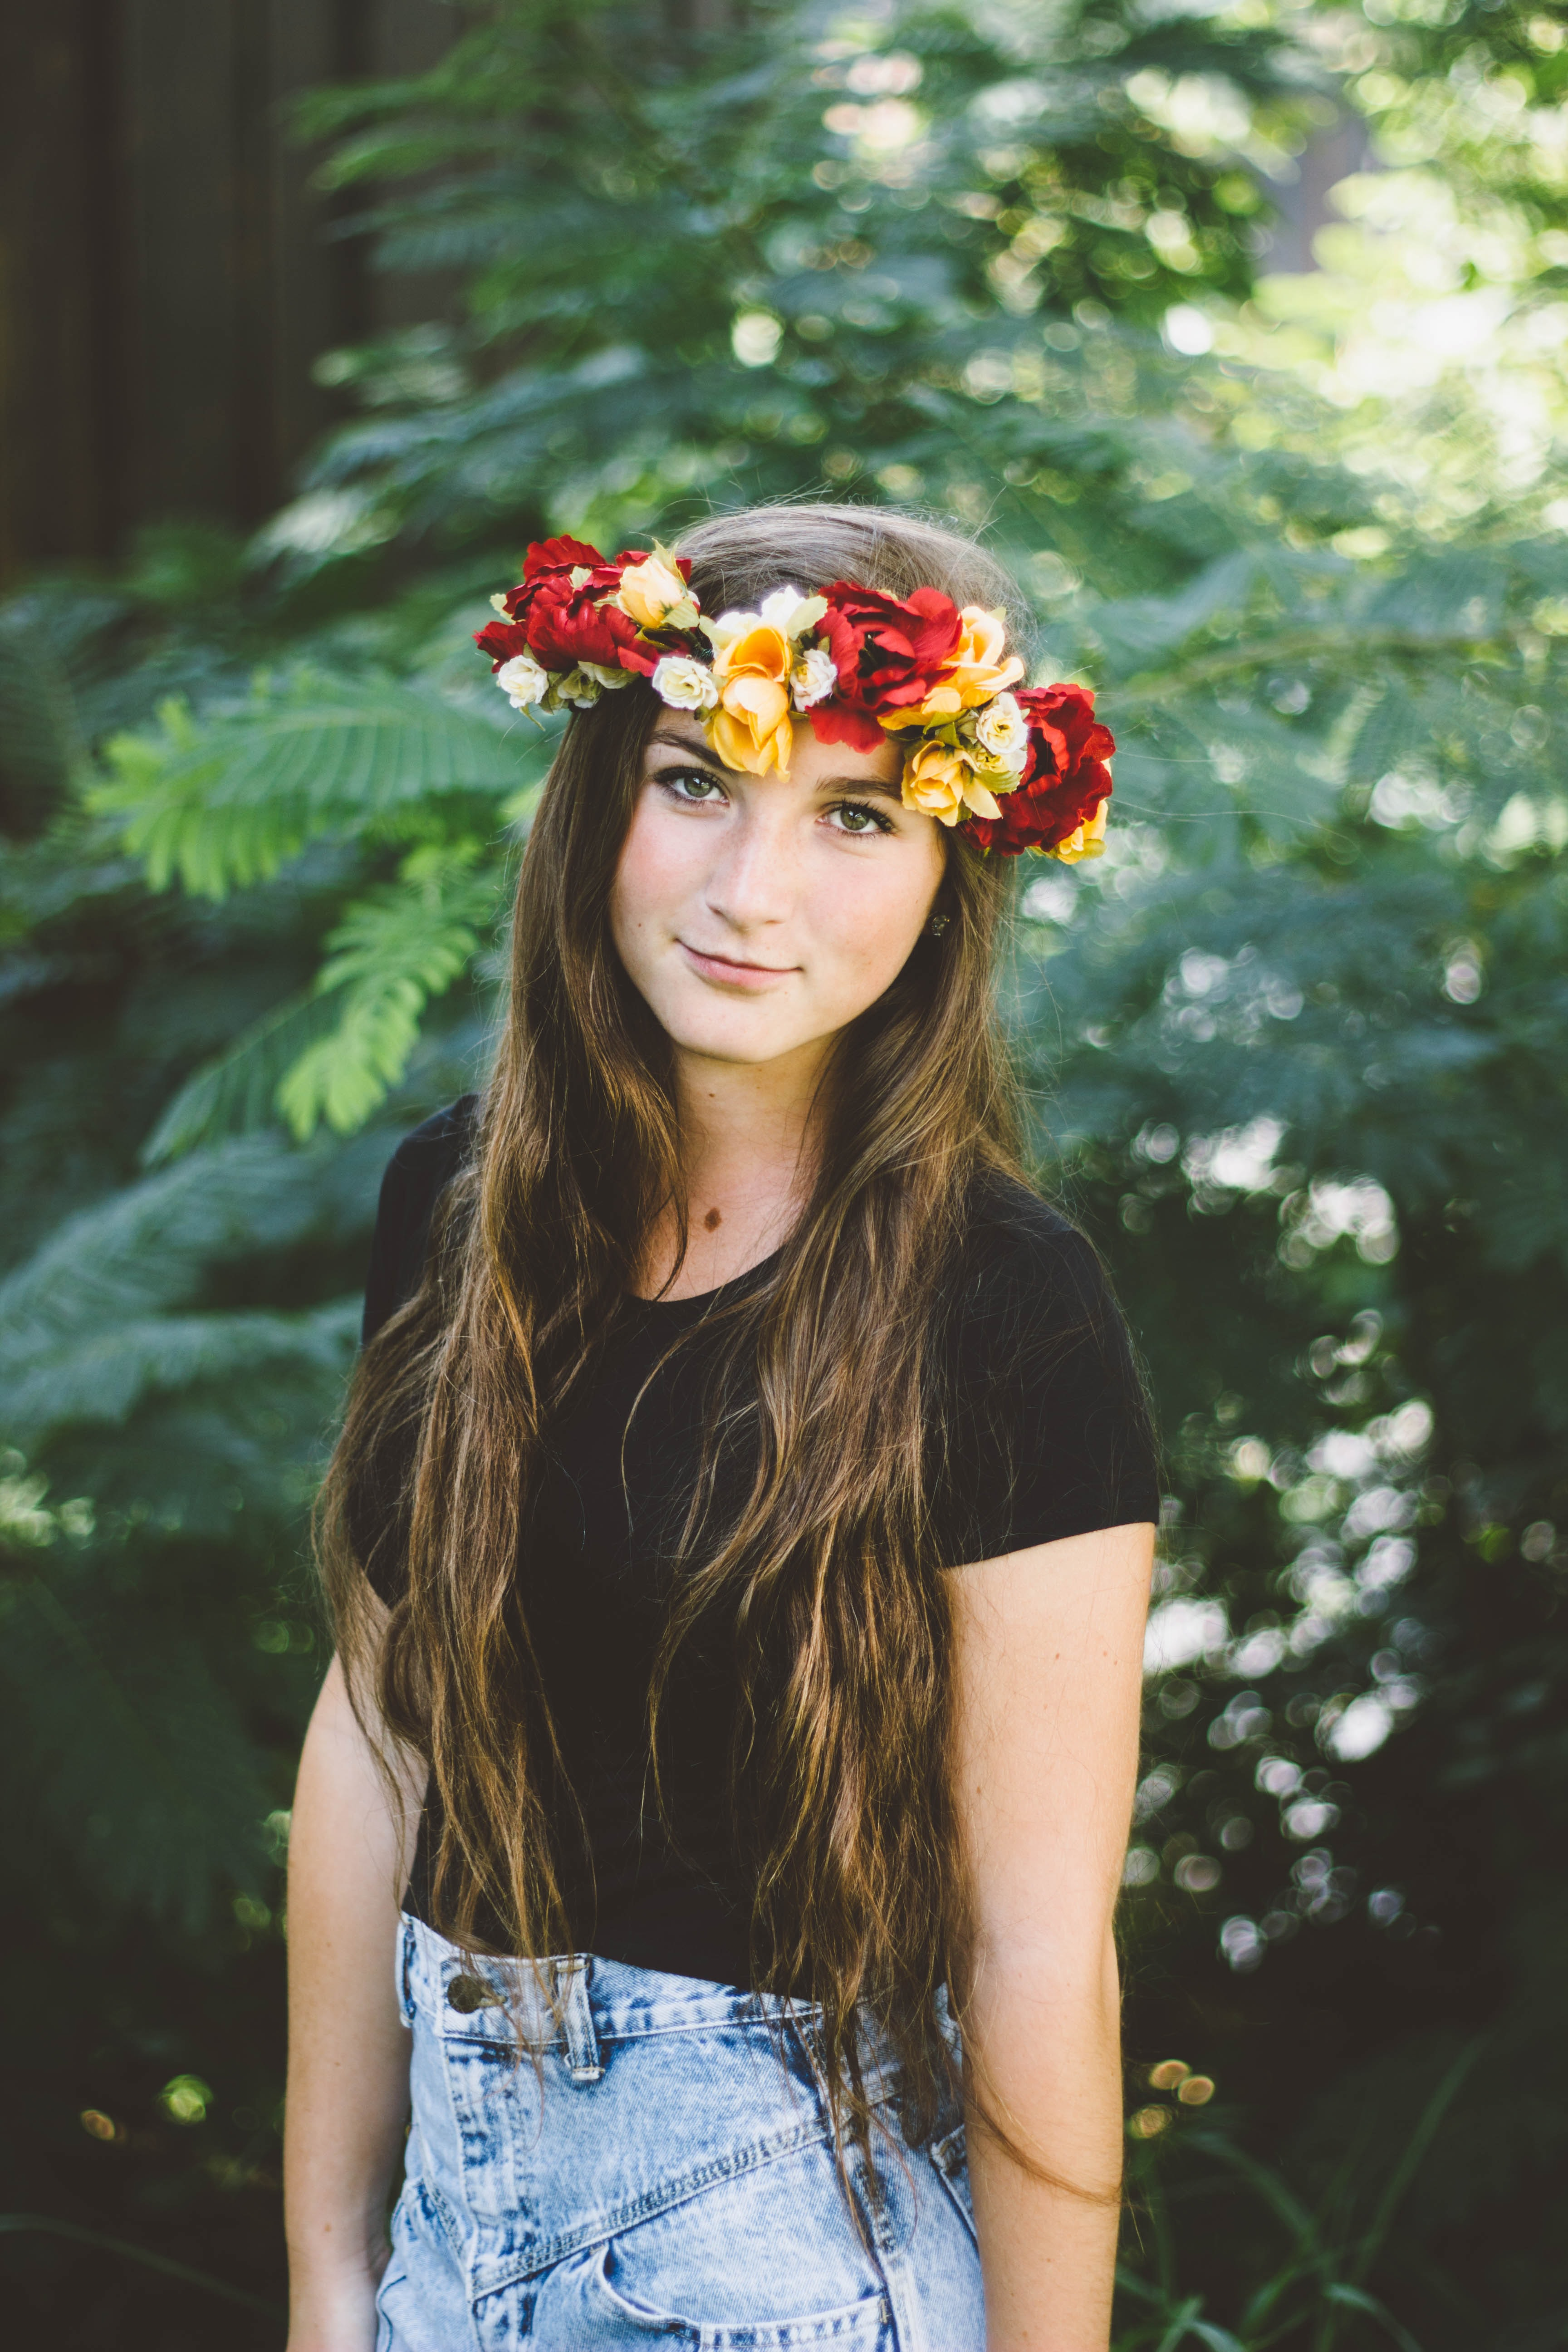 A young woman in a headband of red and yellow flowers